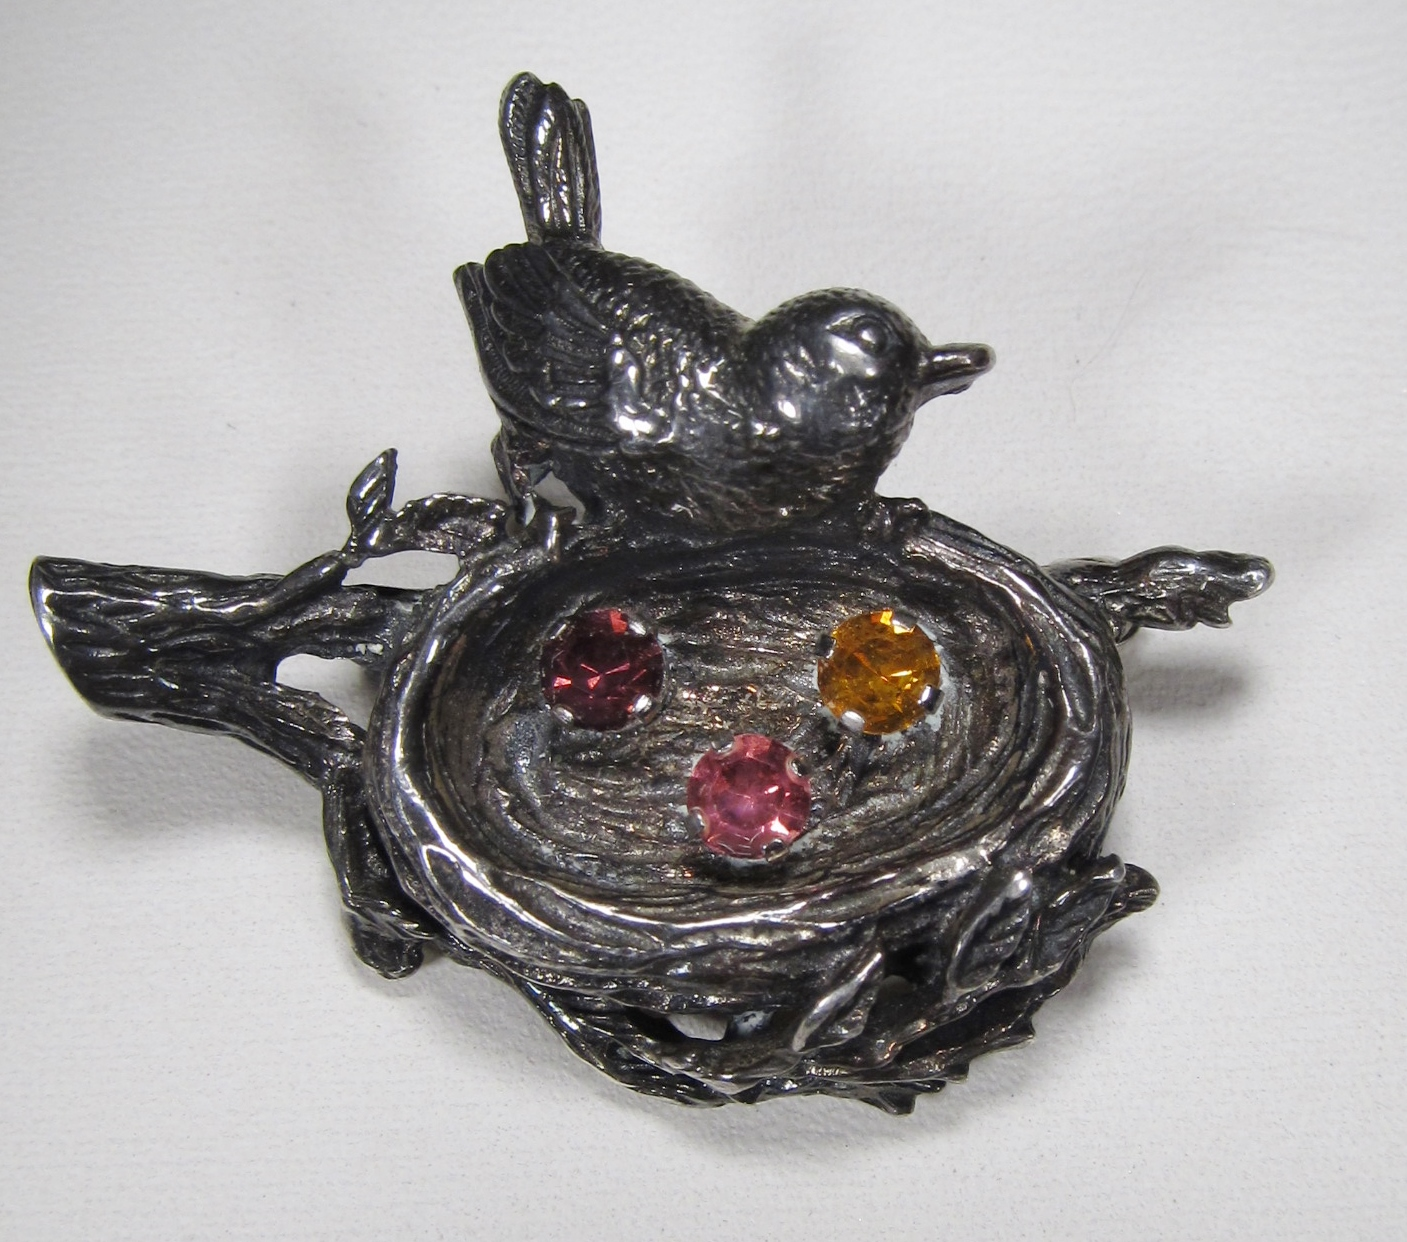 vintage anson sterling silver bird nest brooch wc 006 decatur coin and jewelry coins. Black Bedroom Furniture Sets. Home Design Ideas